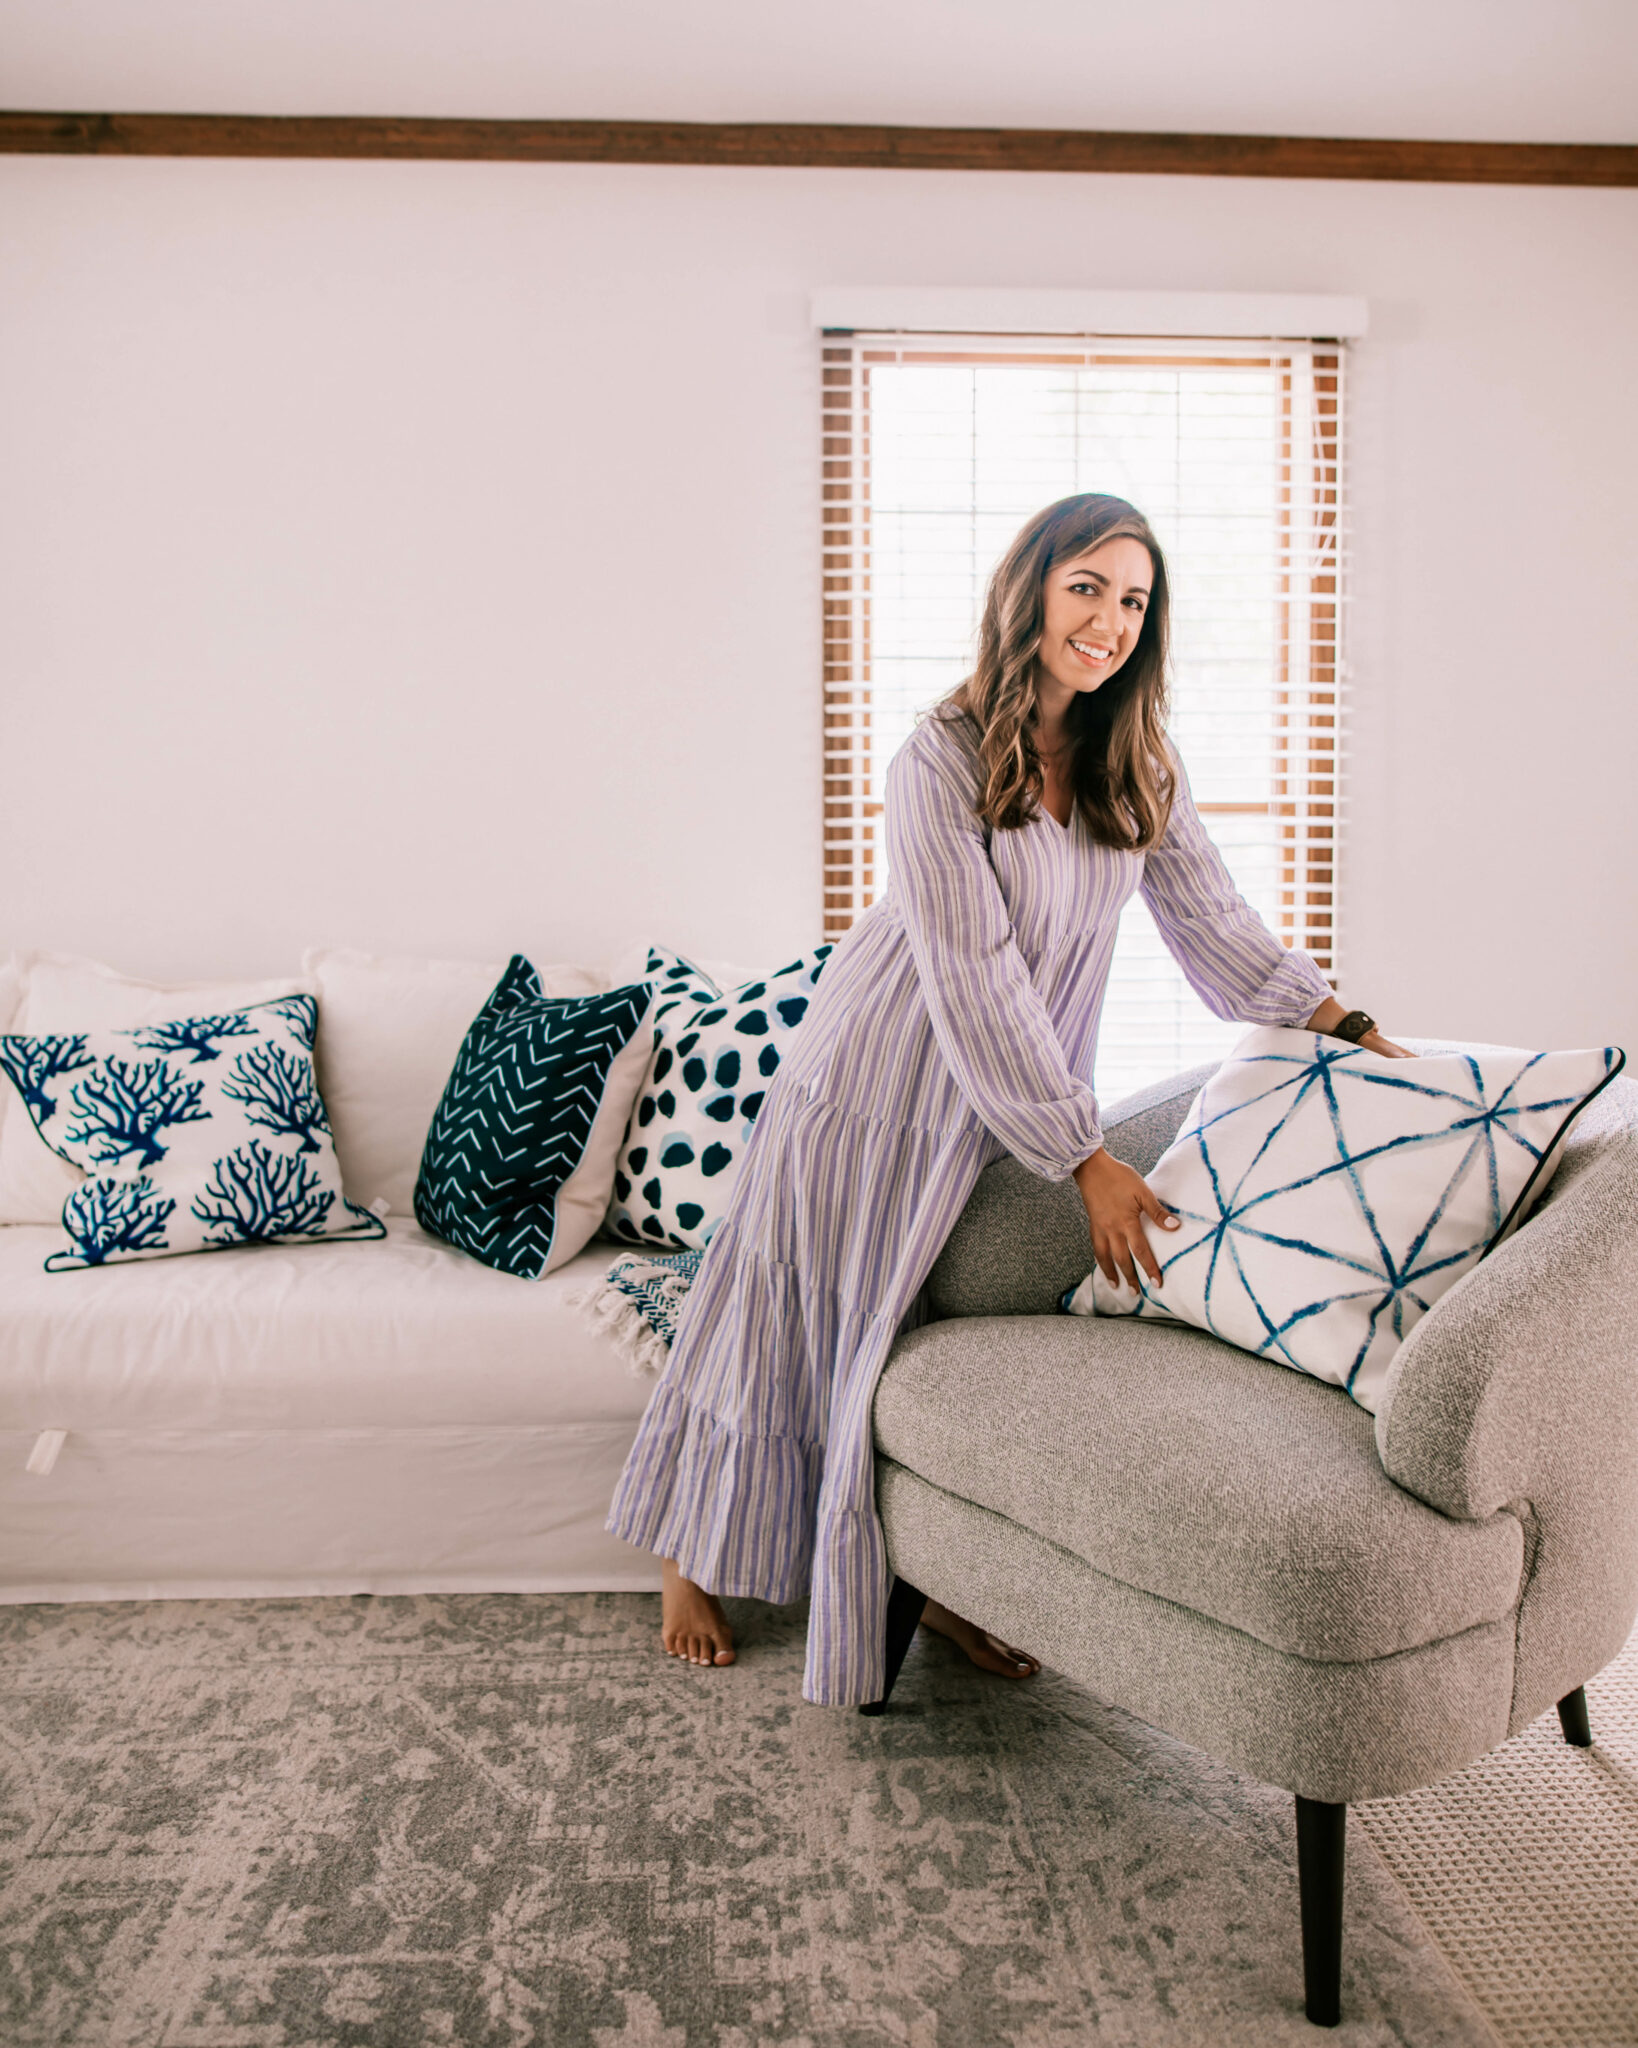 Thomasville Furniture by popular Chicago life and style blog, Glass of Glam: image of a woman wearing a purple stripe maxi dress and setting a white and blue throw pillow on a grey armchair.